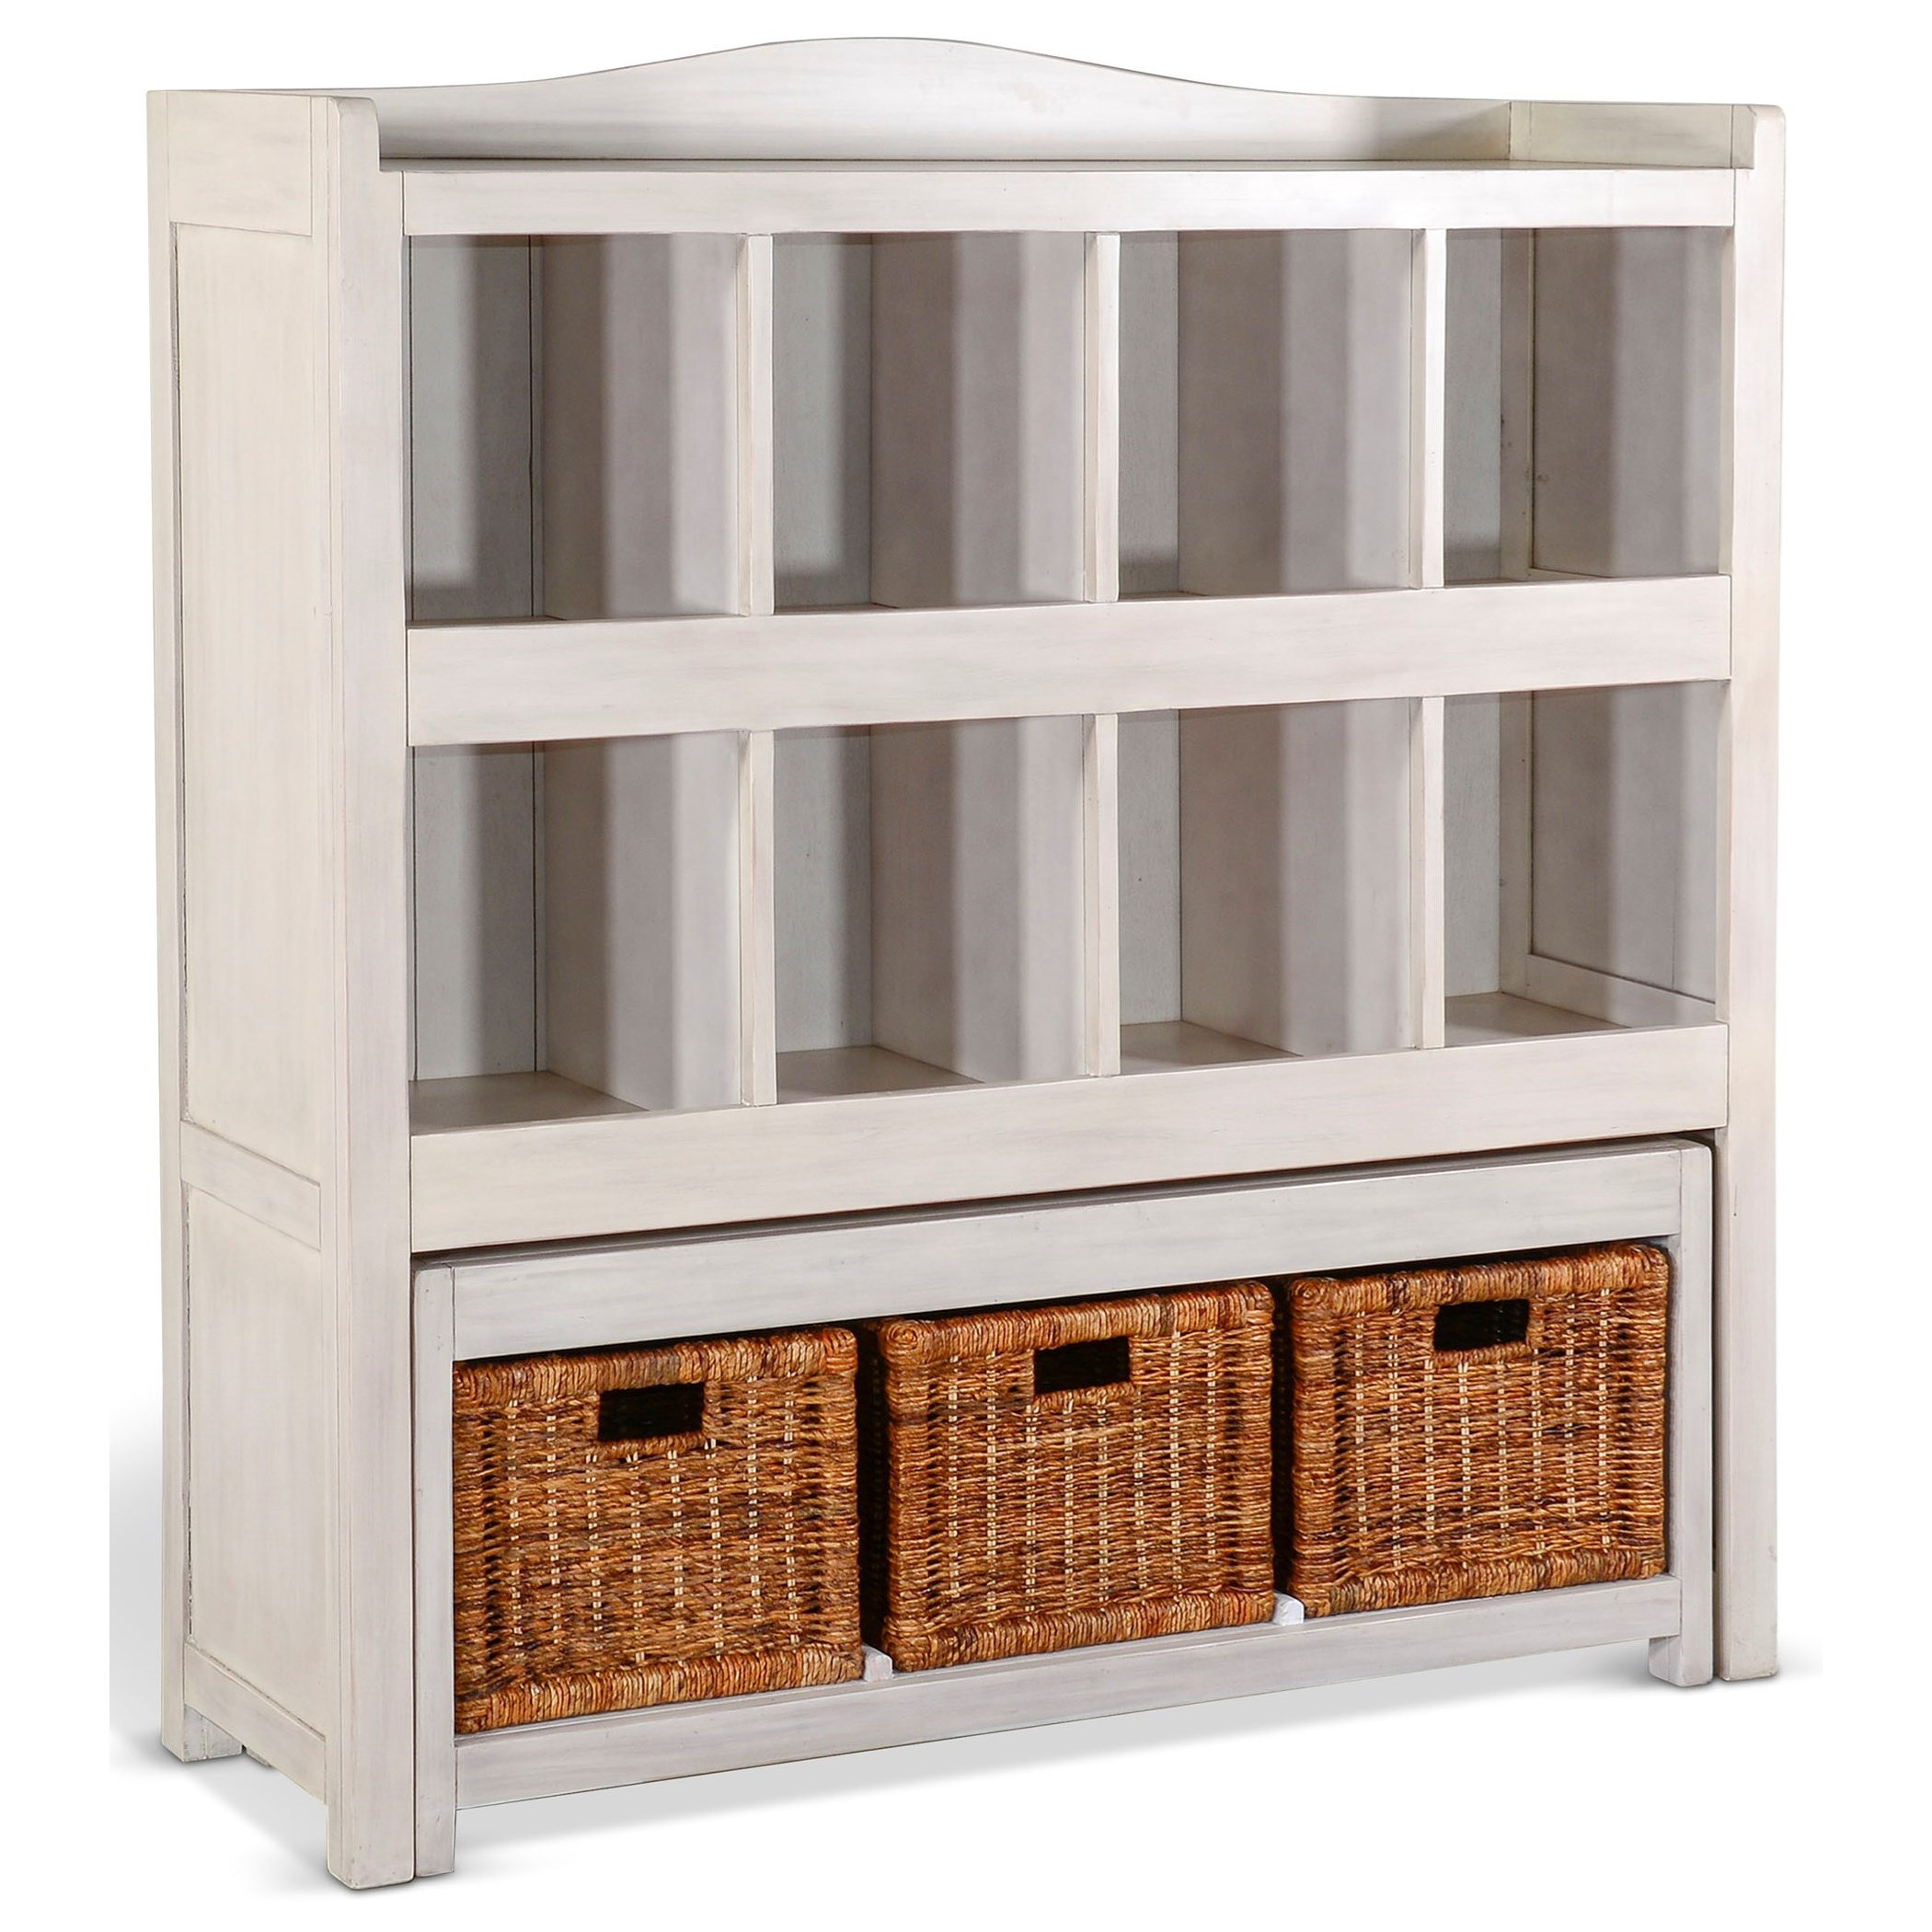 2993 Storage Bookcase w/ Trundle Bench at Sadler's Home Furnishings